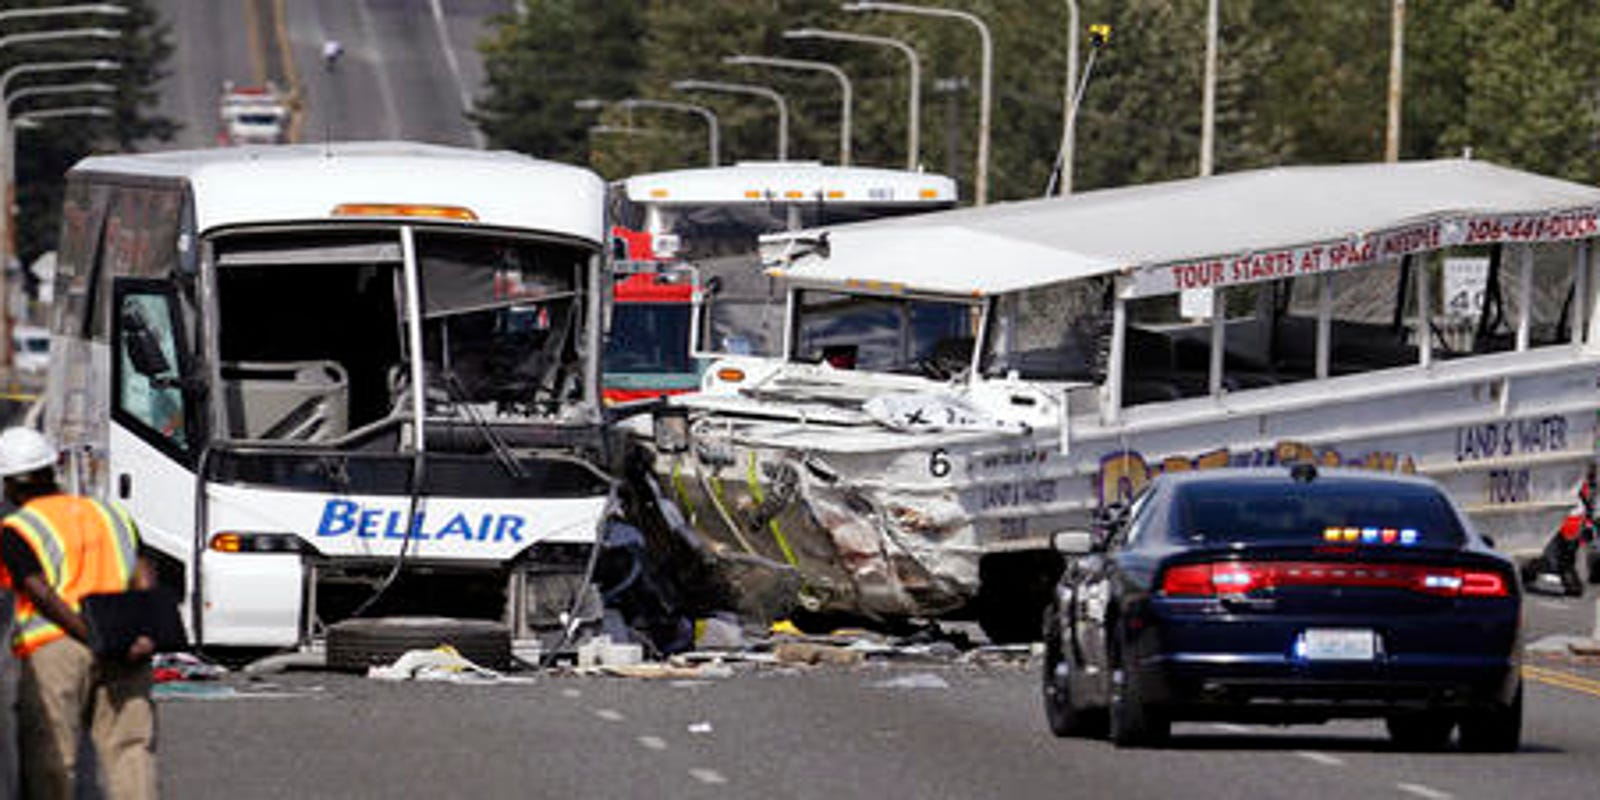 Duck boats have history of fatalities, even before Branson accident